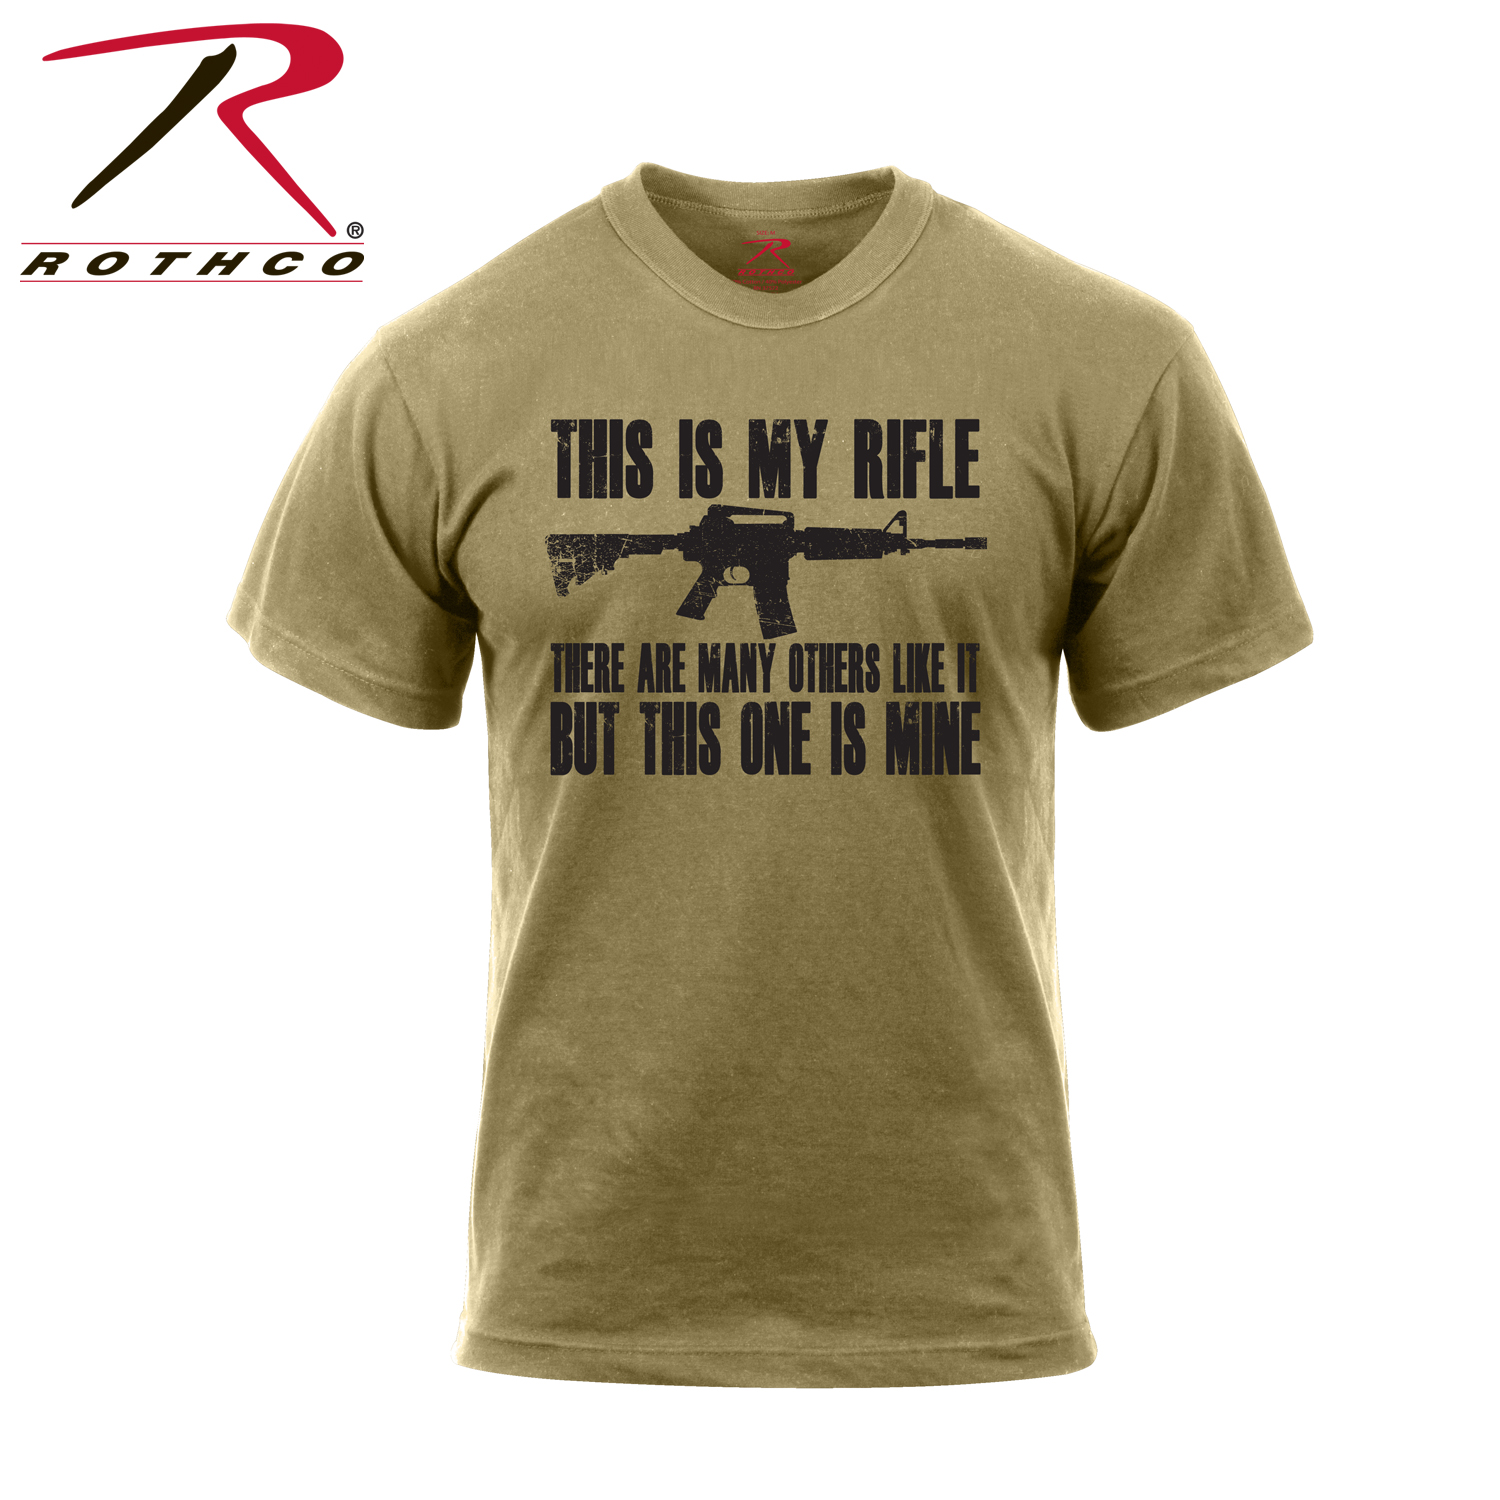 796a3bbf2 Rothco 'This Is My Rifle' T-Shirt